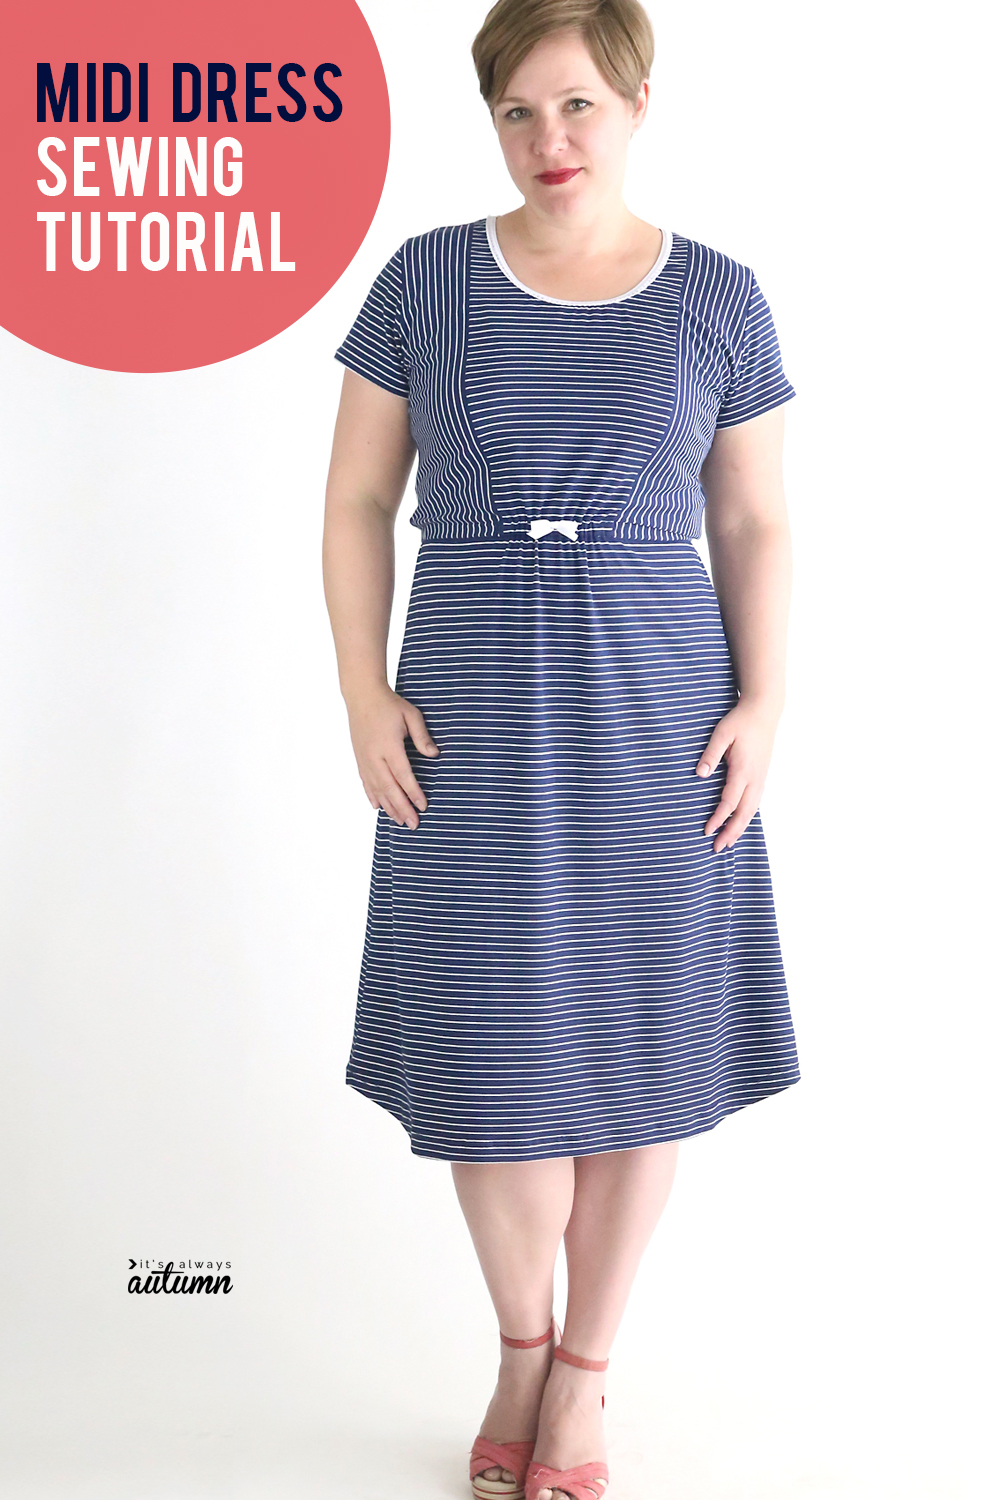 How to sew a cute midi dress using a free t-shirt pattern. Easy women's dress pattern and tutorial.